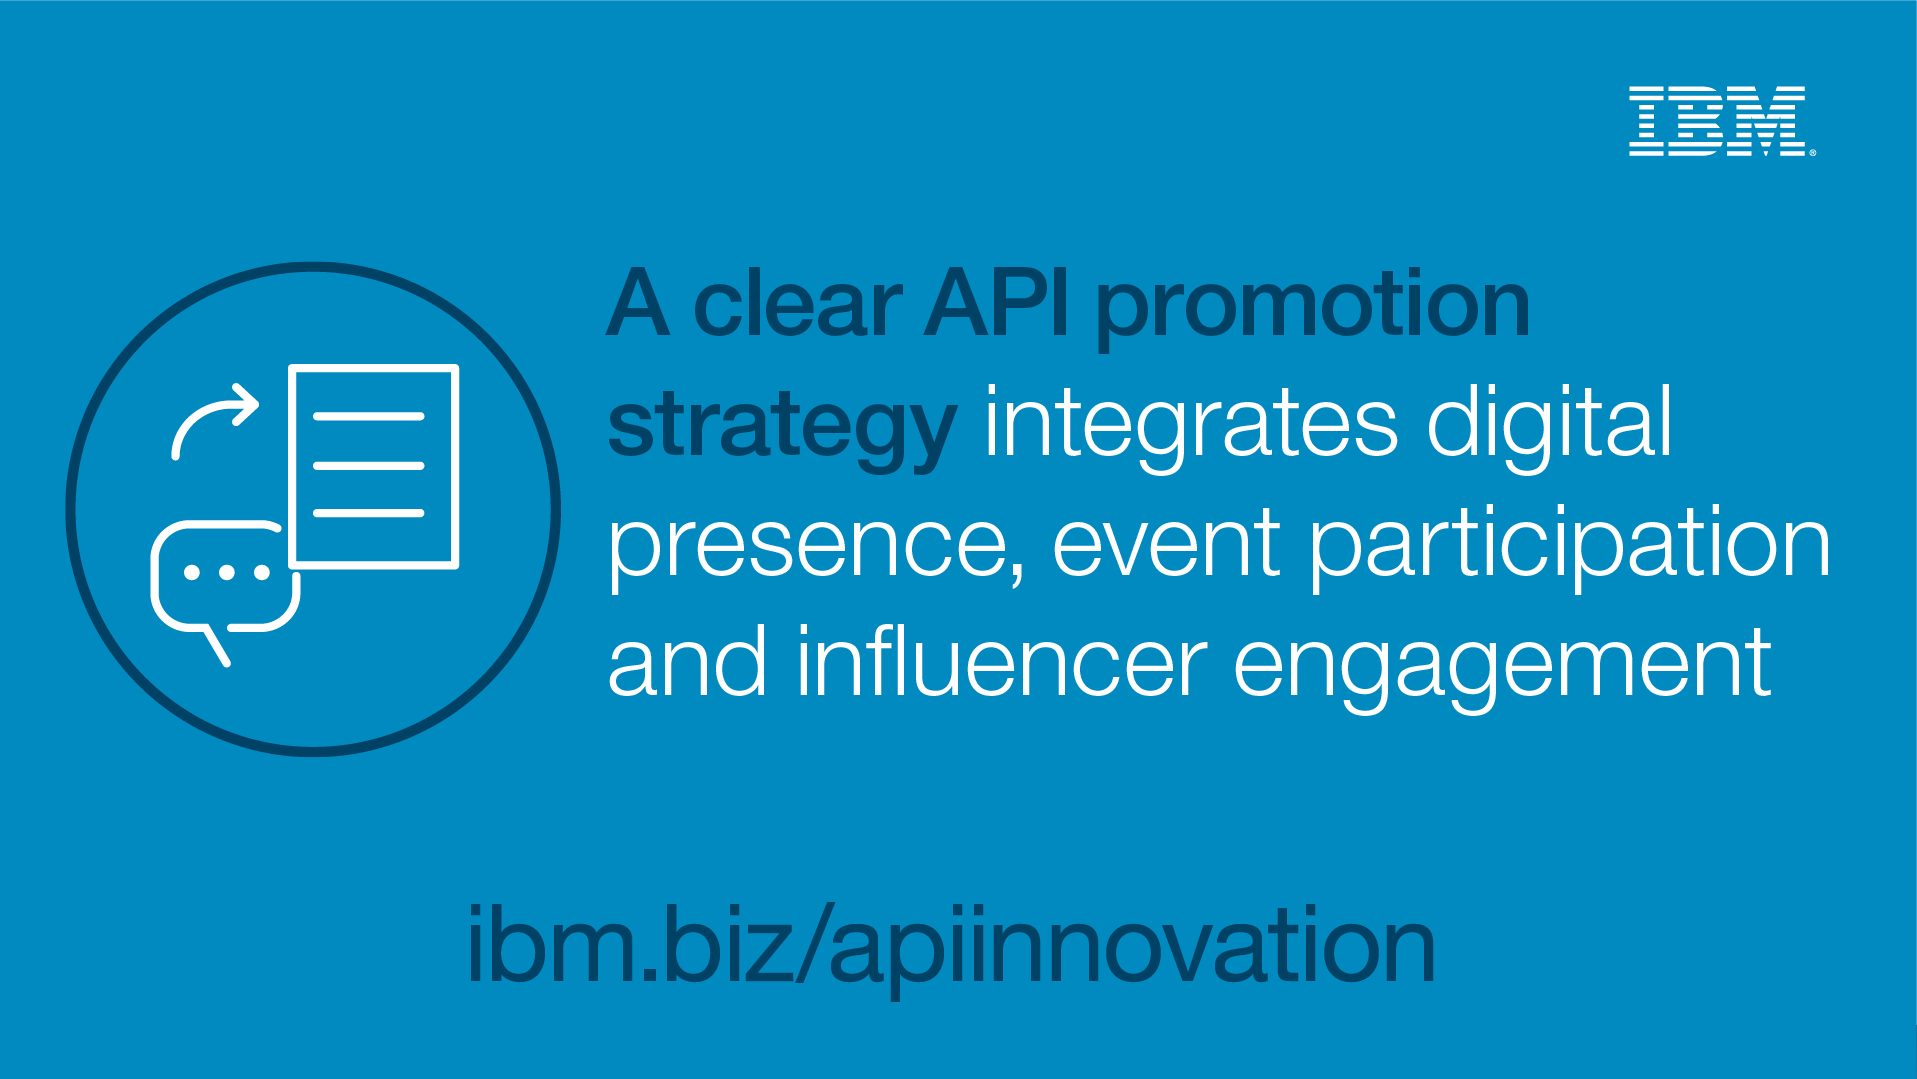 A clear API promotion strategy integrates digital presence, event participation and influencer engagement - ibm.biz/apiinnovation